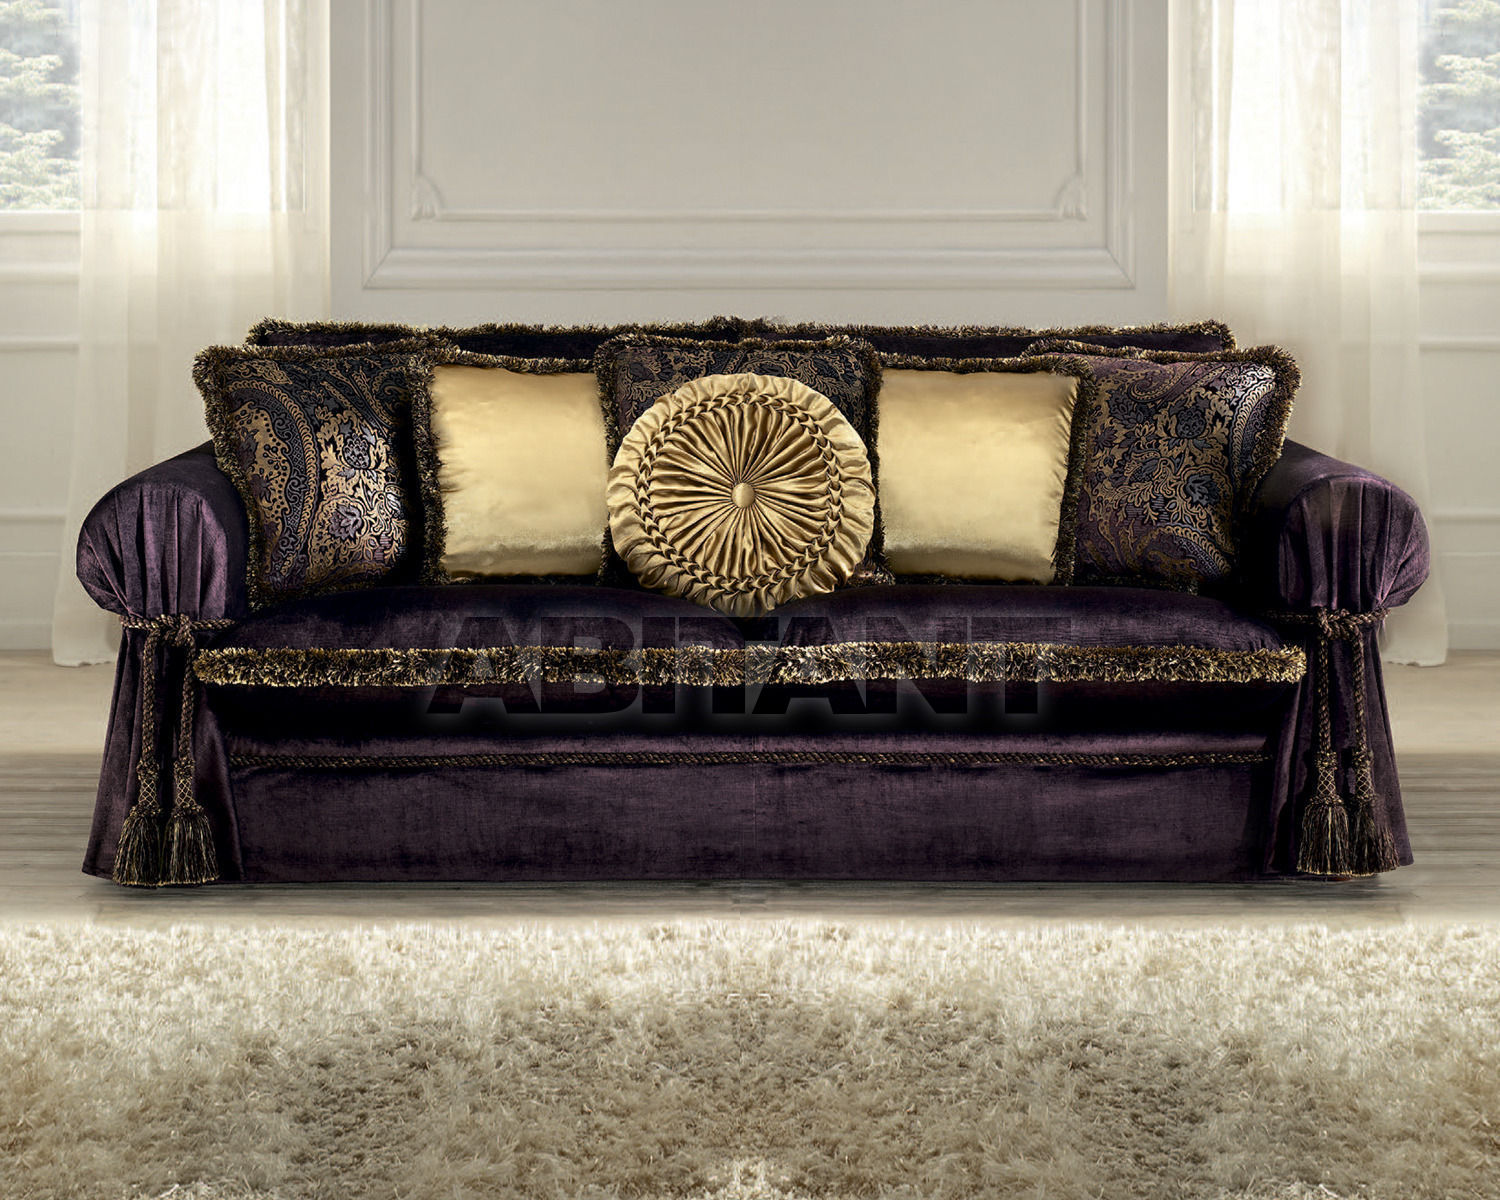 Sofa william siwa by zandarin silvano divani e poltrone william large 222x115 - Poltrone e sofa paris ...